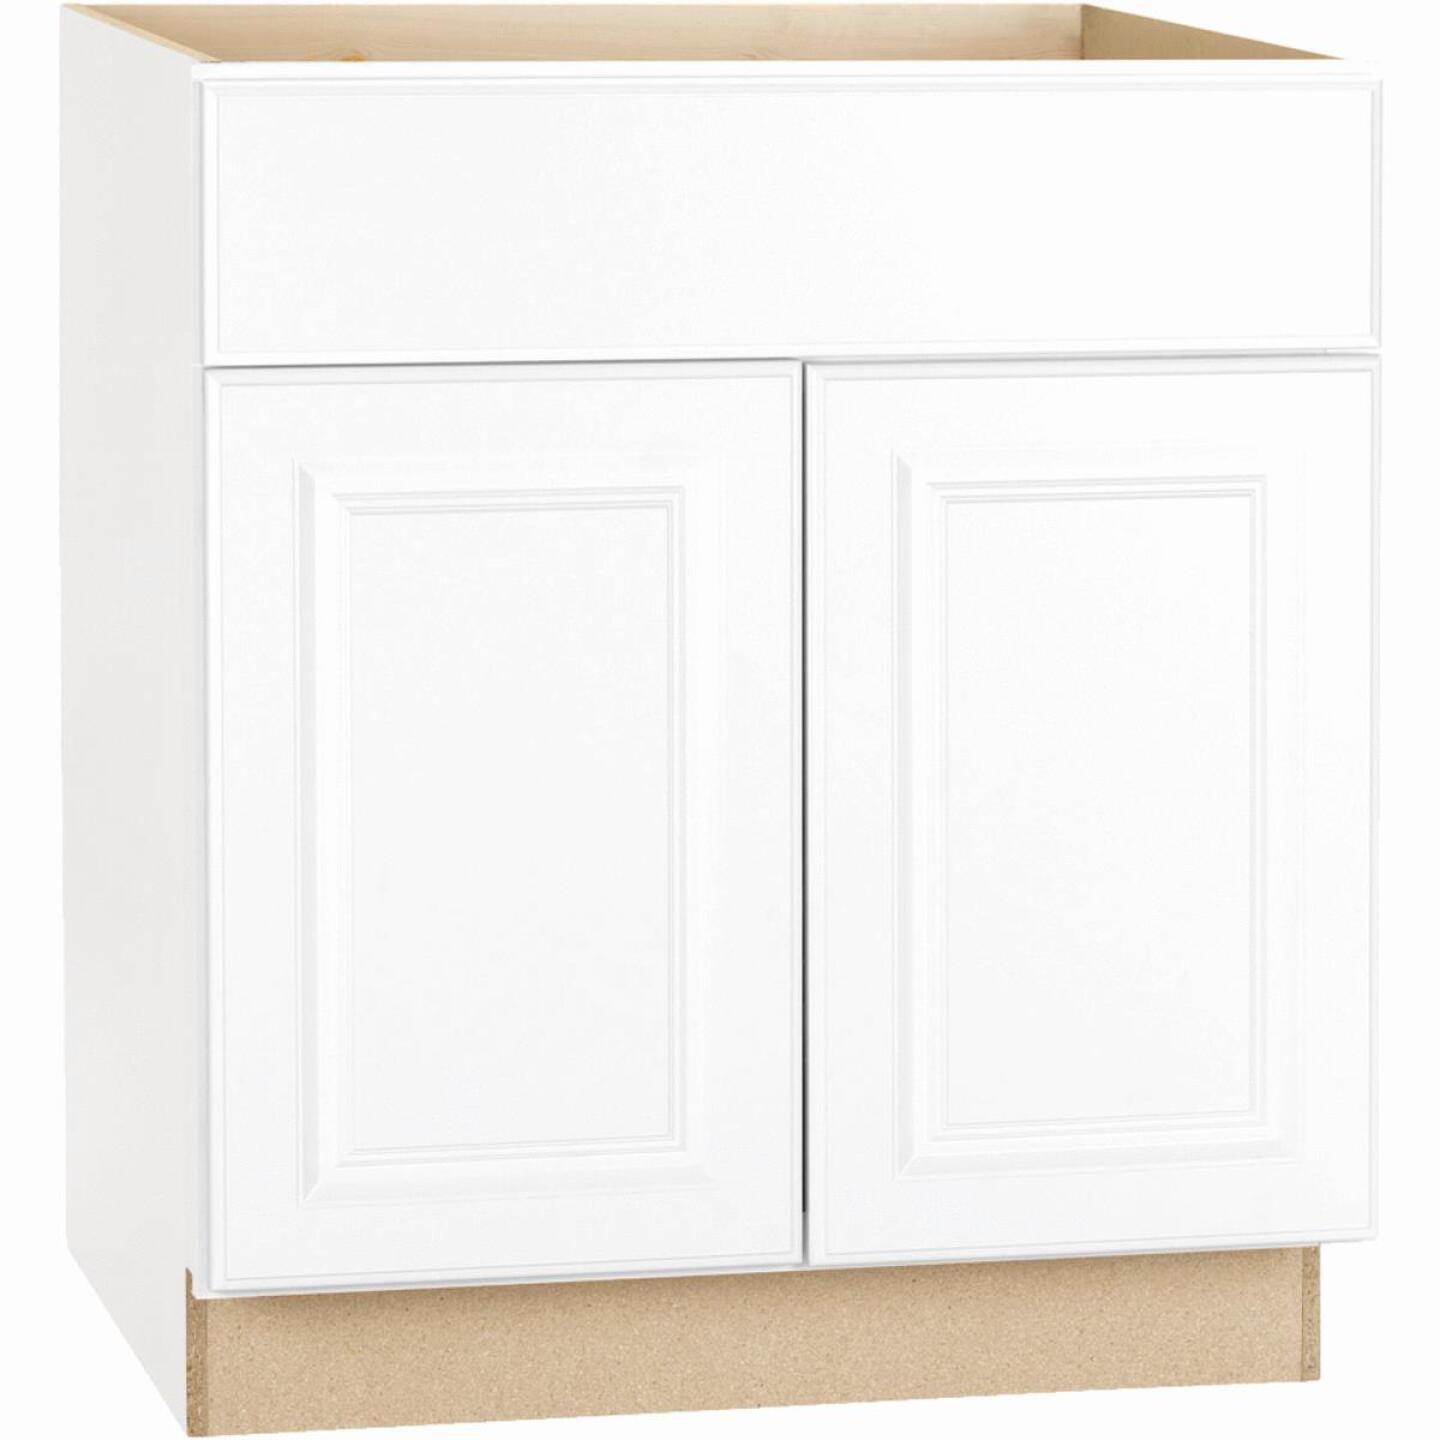 Continental Cabinets Hamilton 30 In. W x 34-1/2 In. H x 24 In. D Satin White Maple Base Kitchen Cabinet Image 2